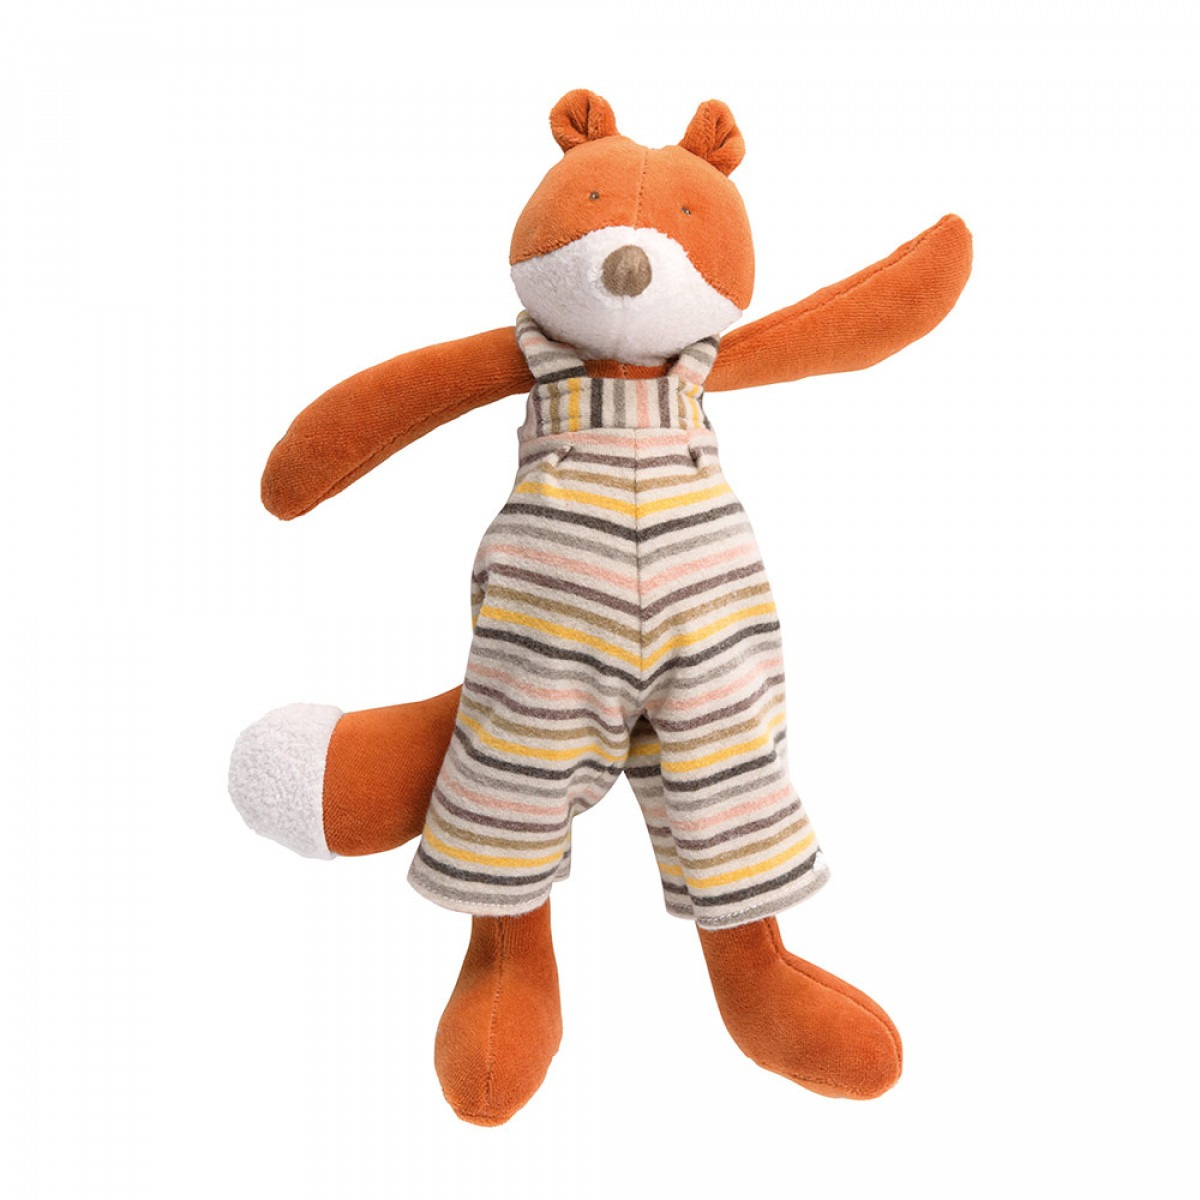 Moulin Roty petit famille Gaspard the fox soft toy